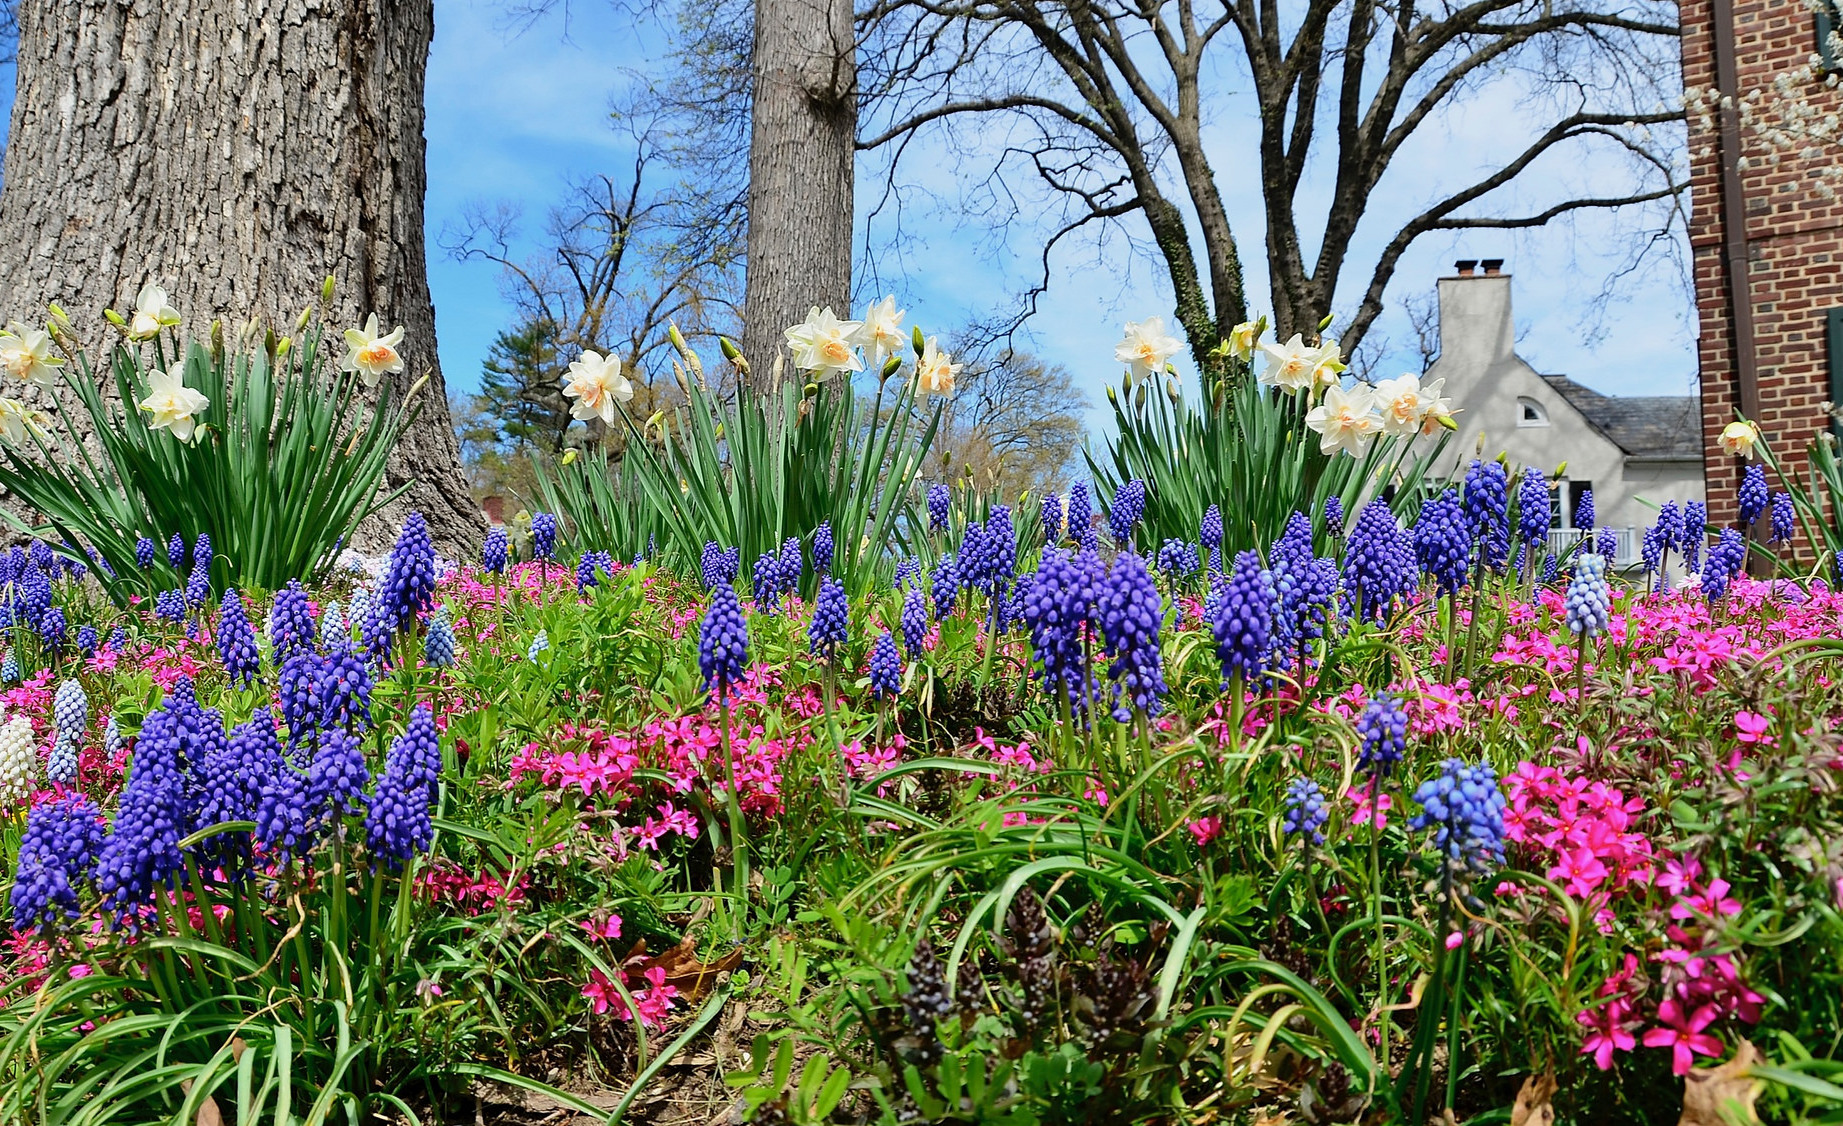 Free photo spring flowers nature natural outdoor free spring flowers izmirmasajfo